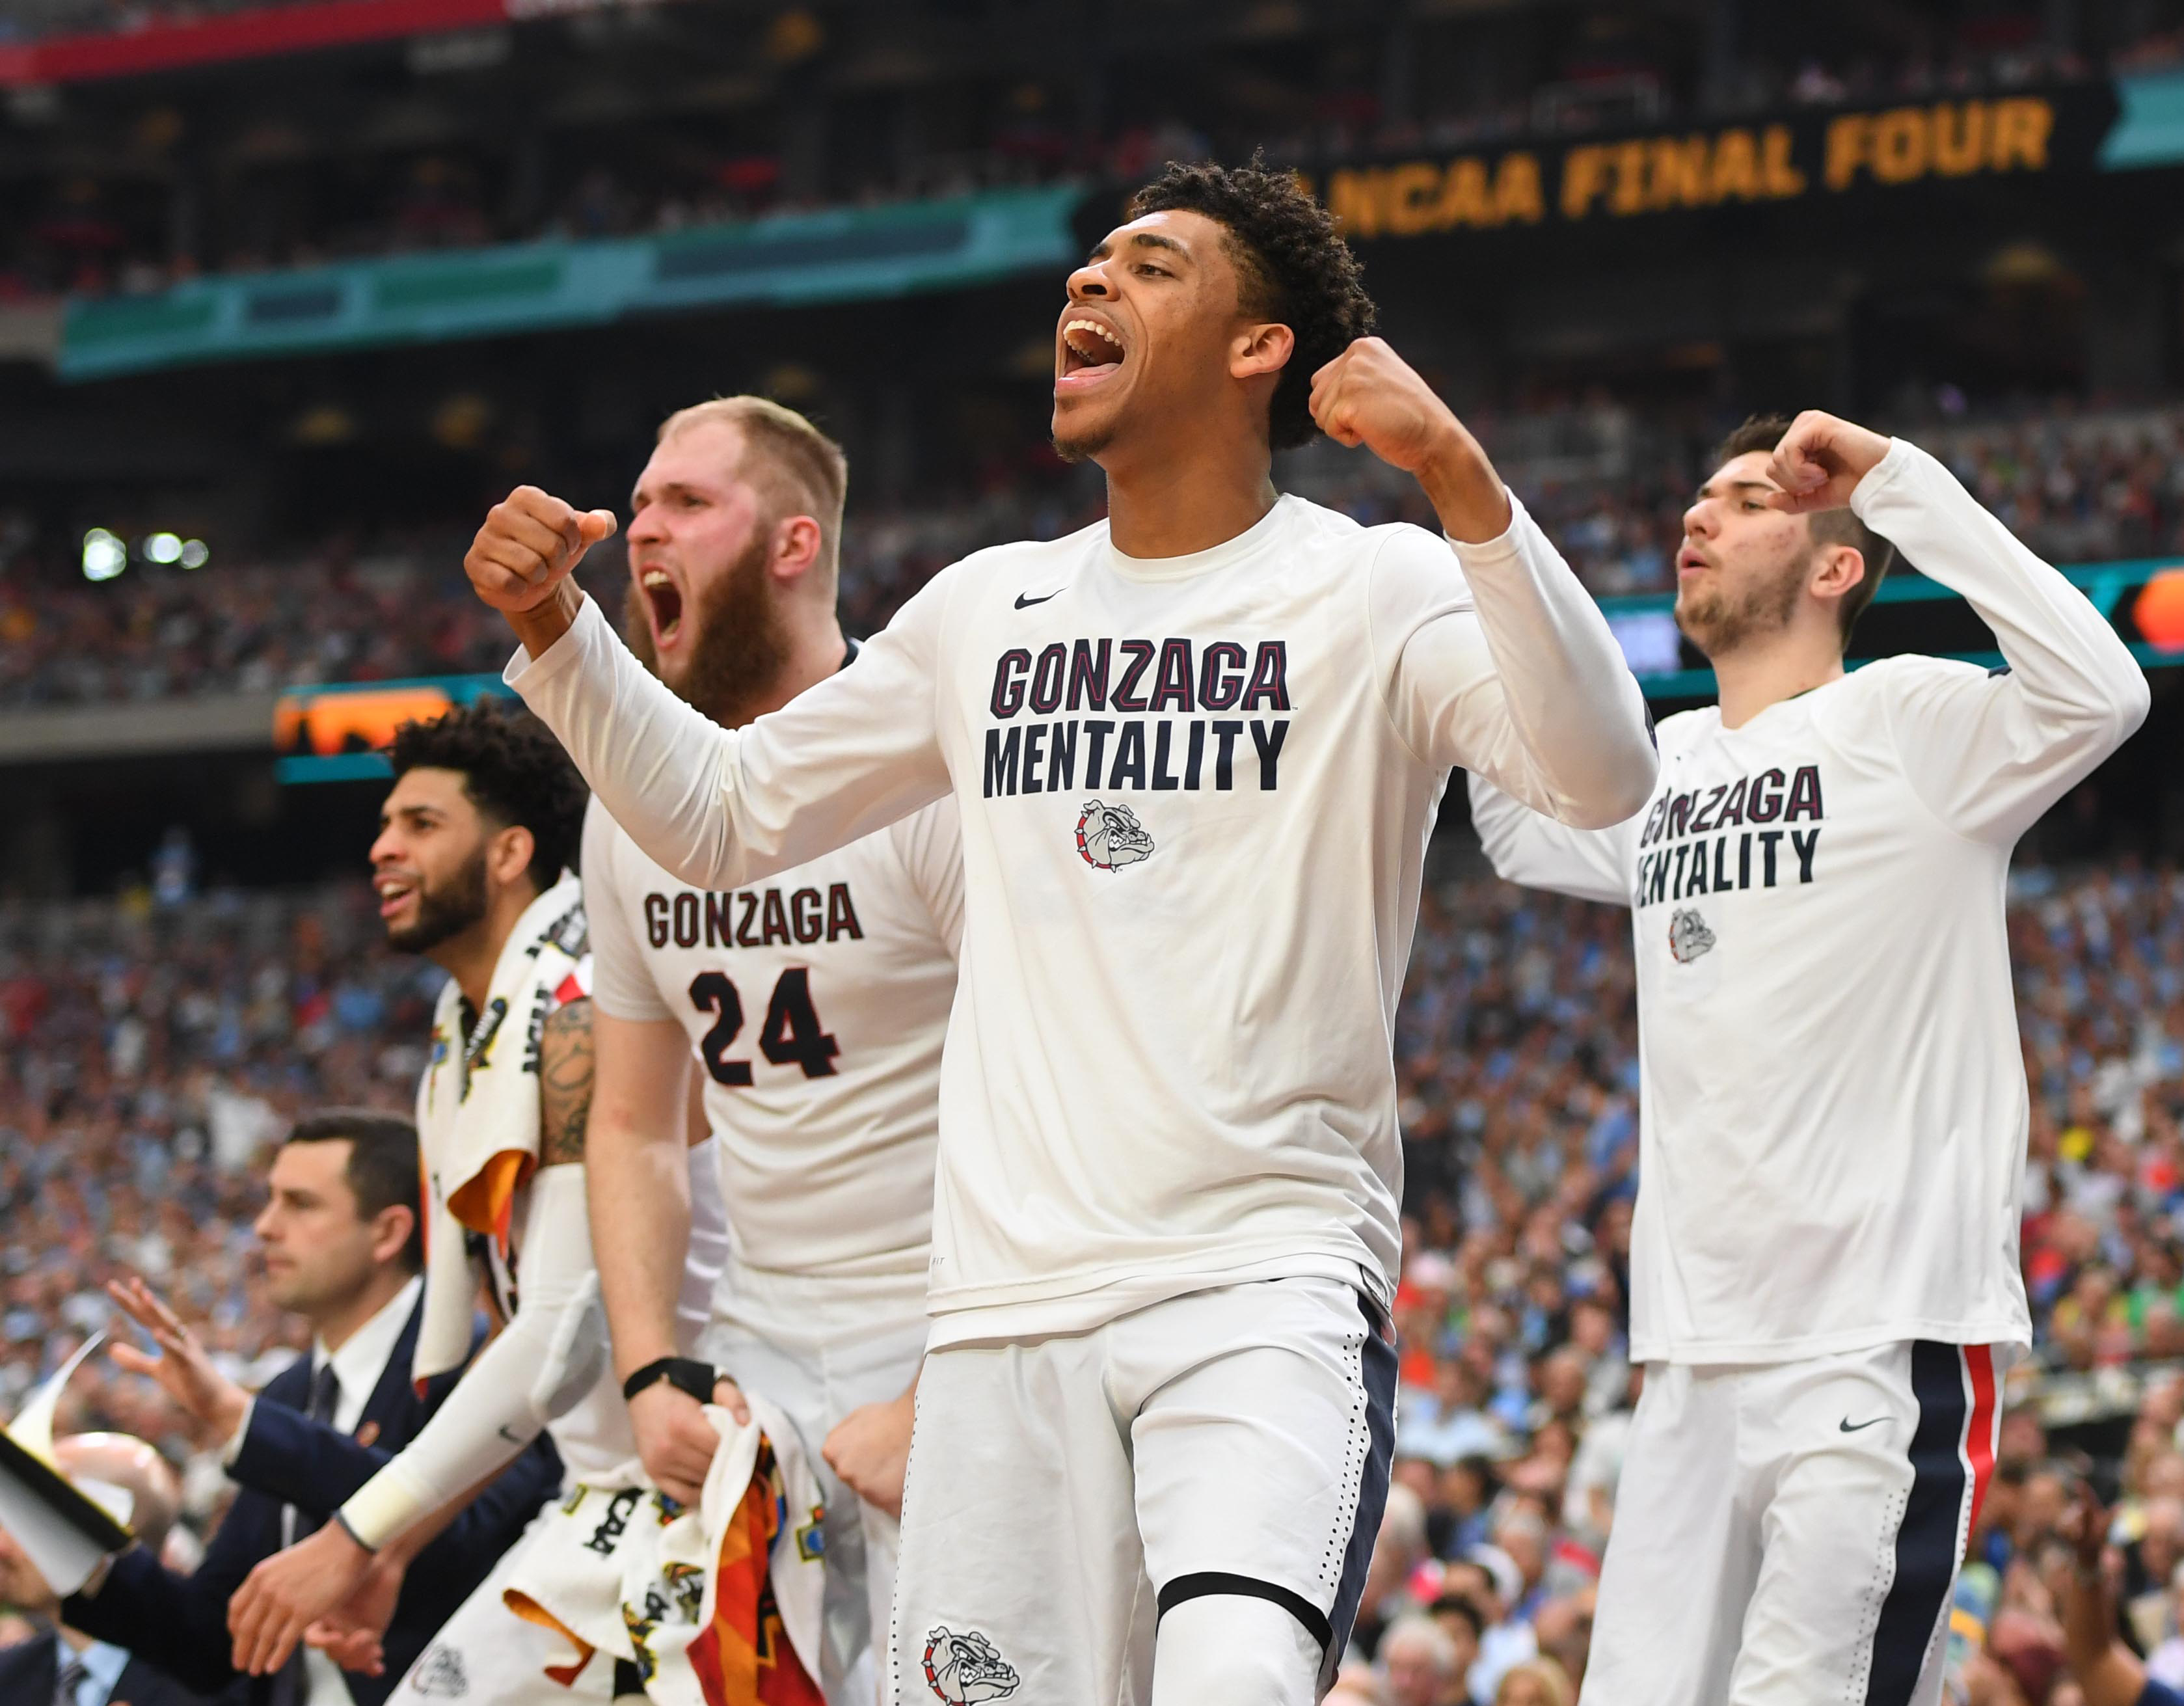 Gonzaga? Yes, the tiny school named after a saint plays NC ...Gonzaga Basketball